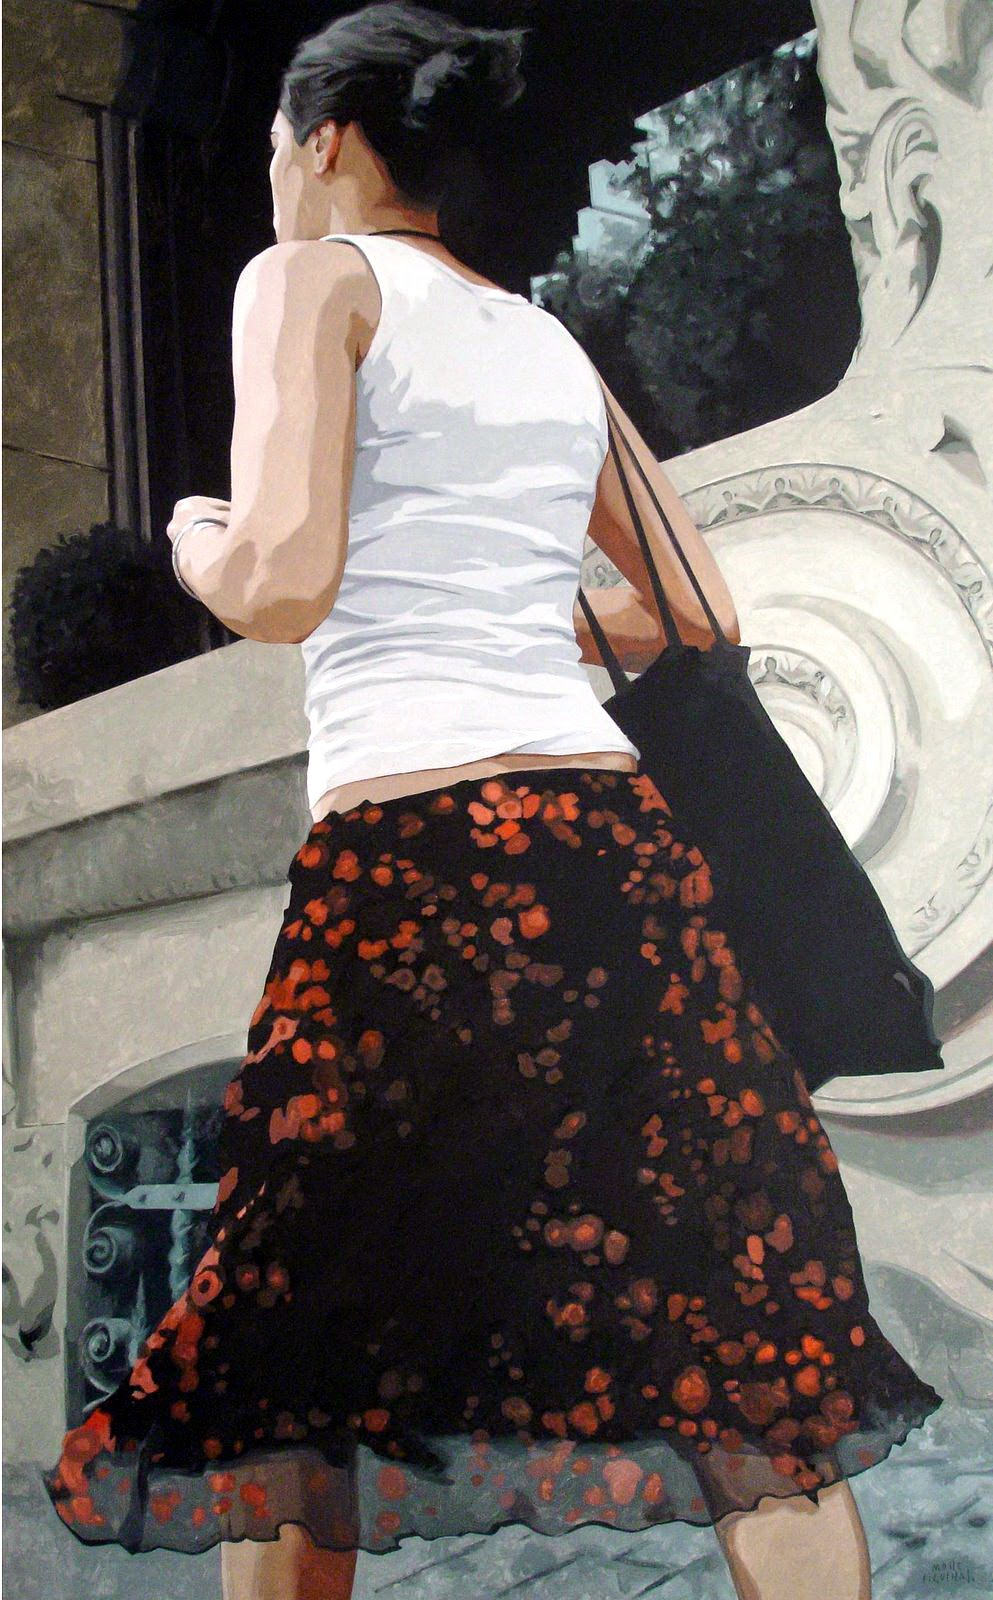 Hyper Realistic Girls Figure Painting By Marc Figueras (21)